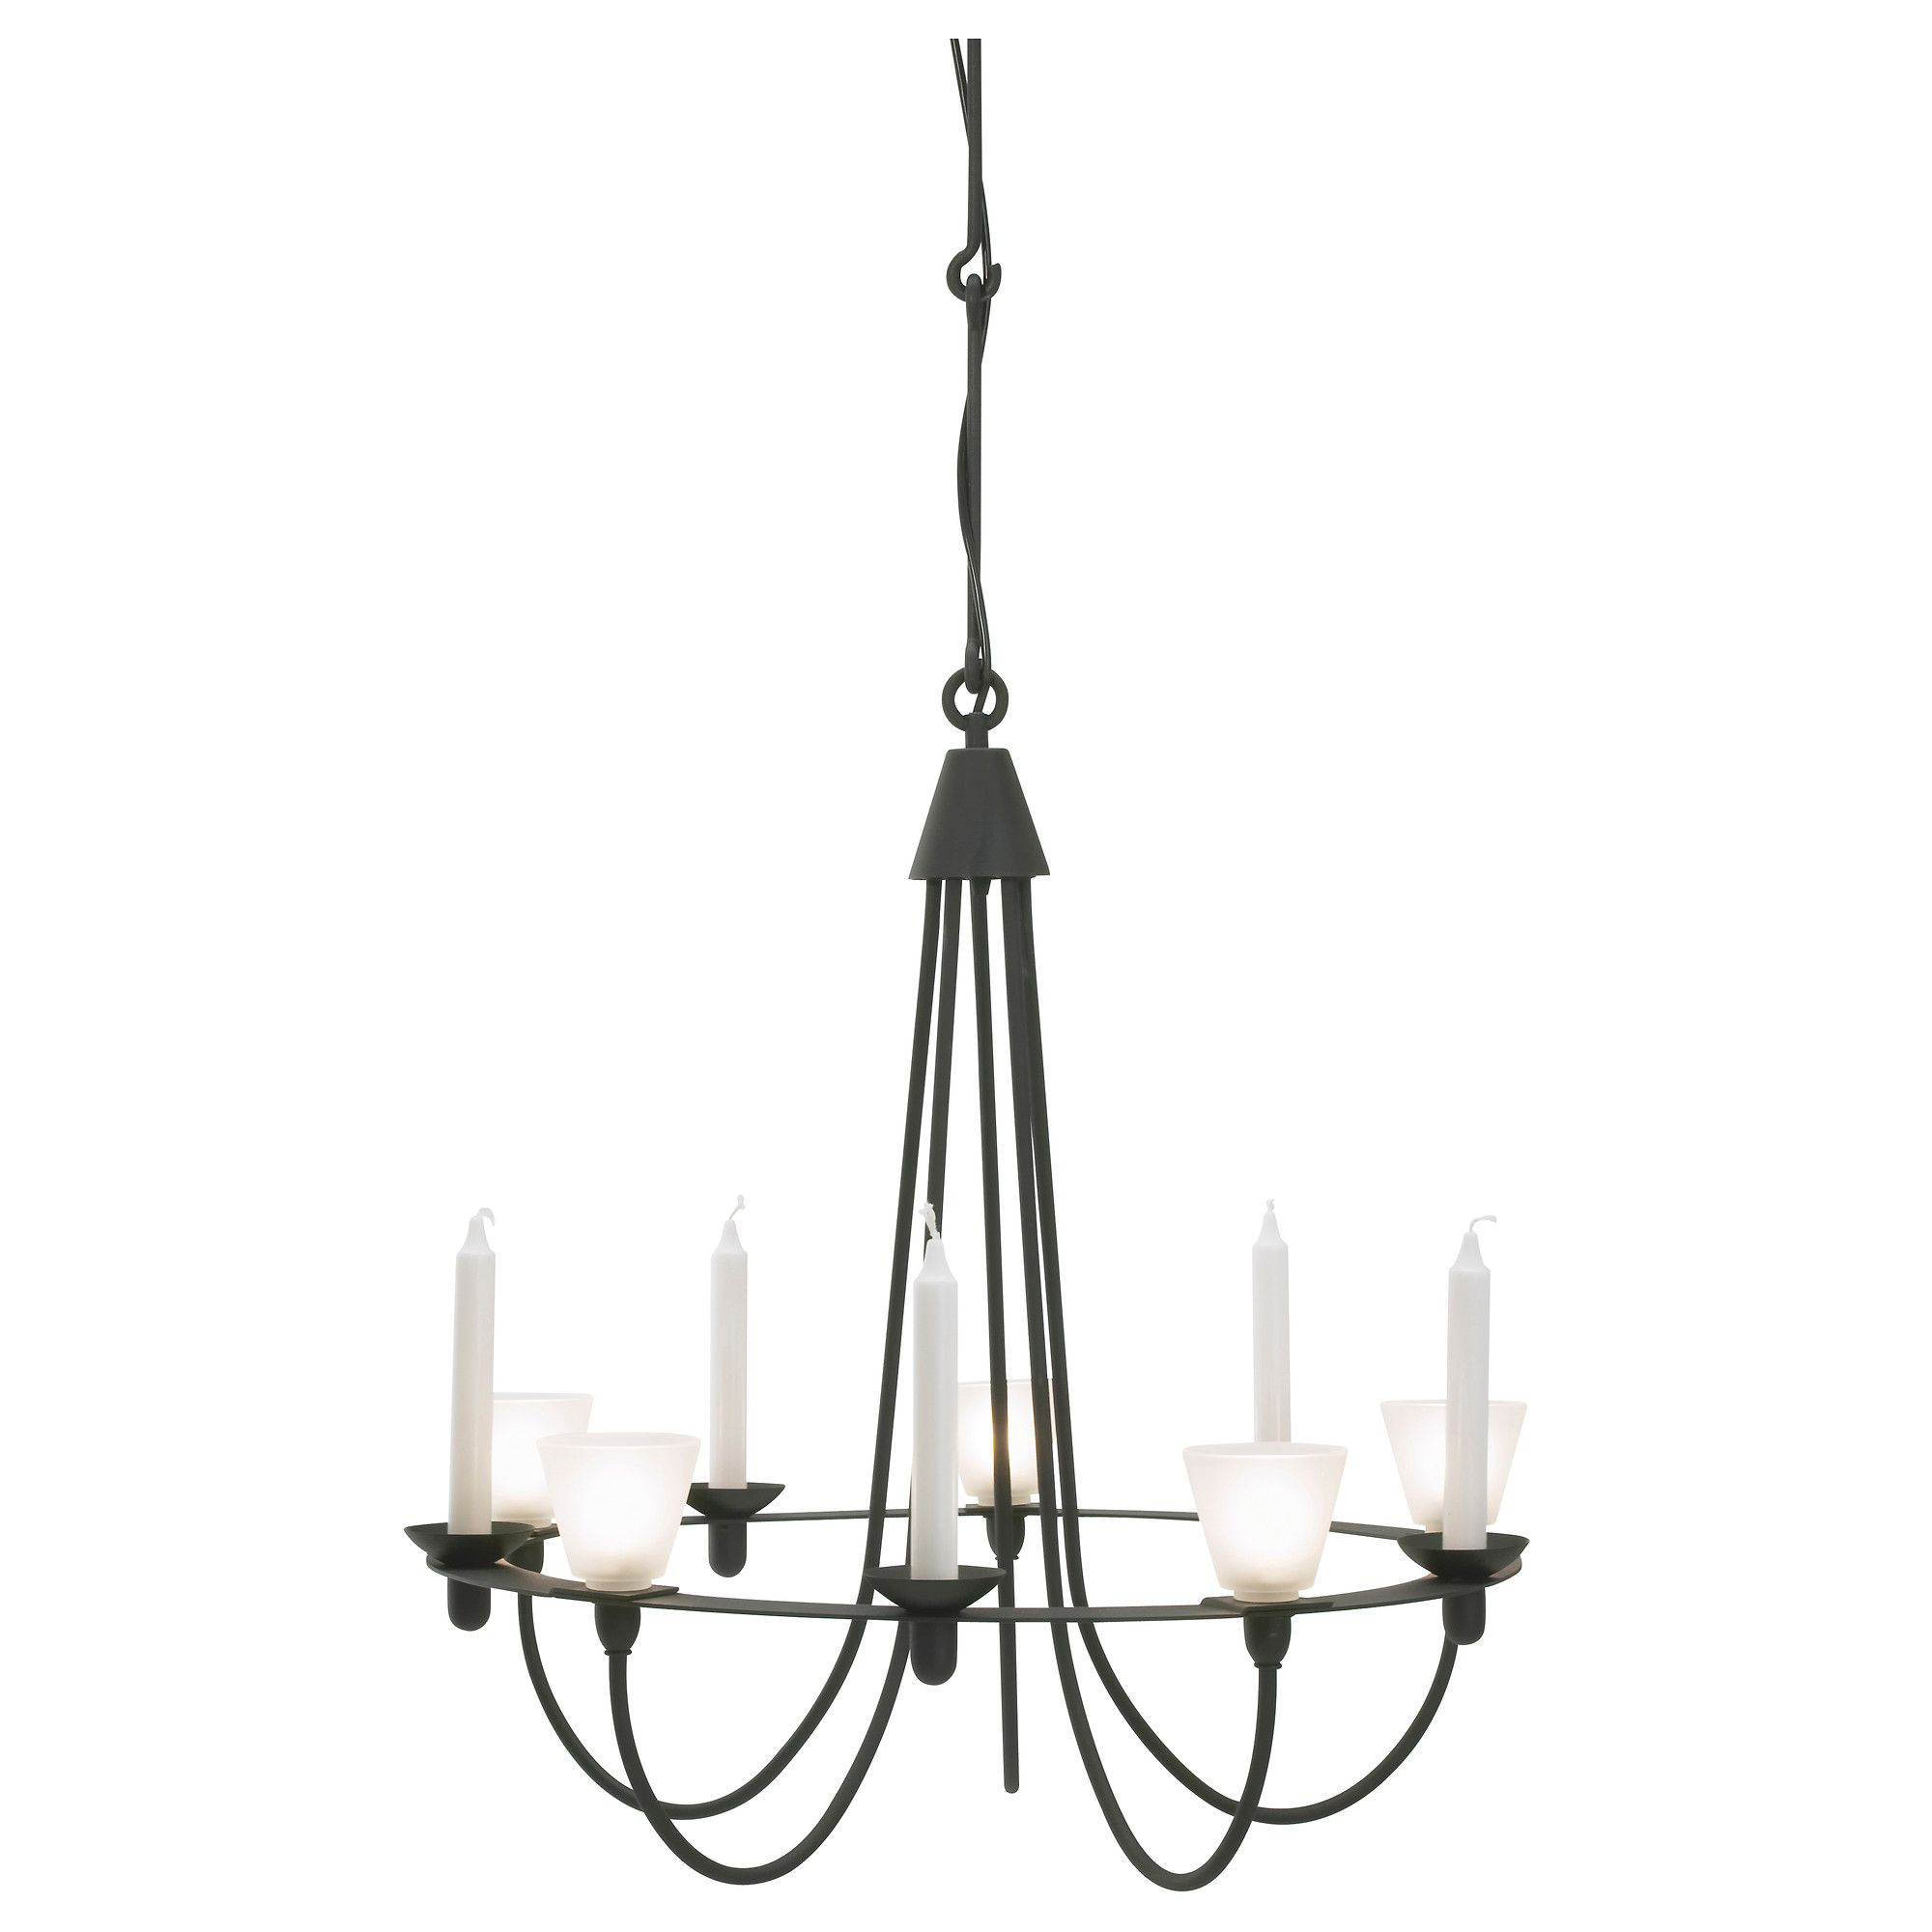 Lerdal Chandelier 49 99 Article Number 502 510 67 Dual